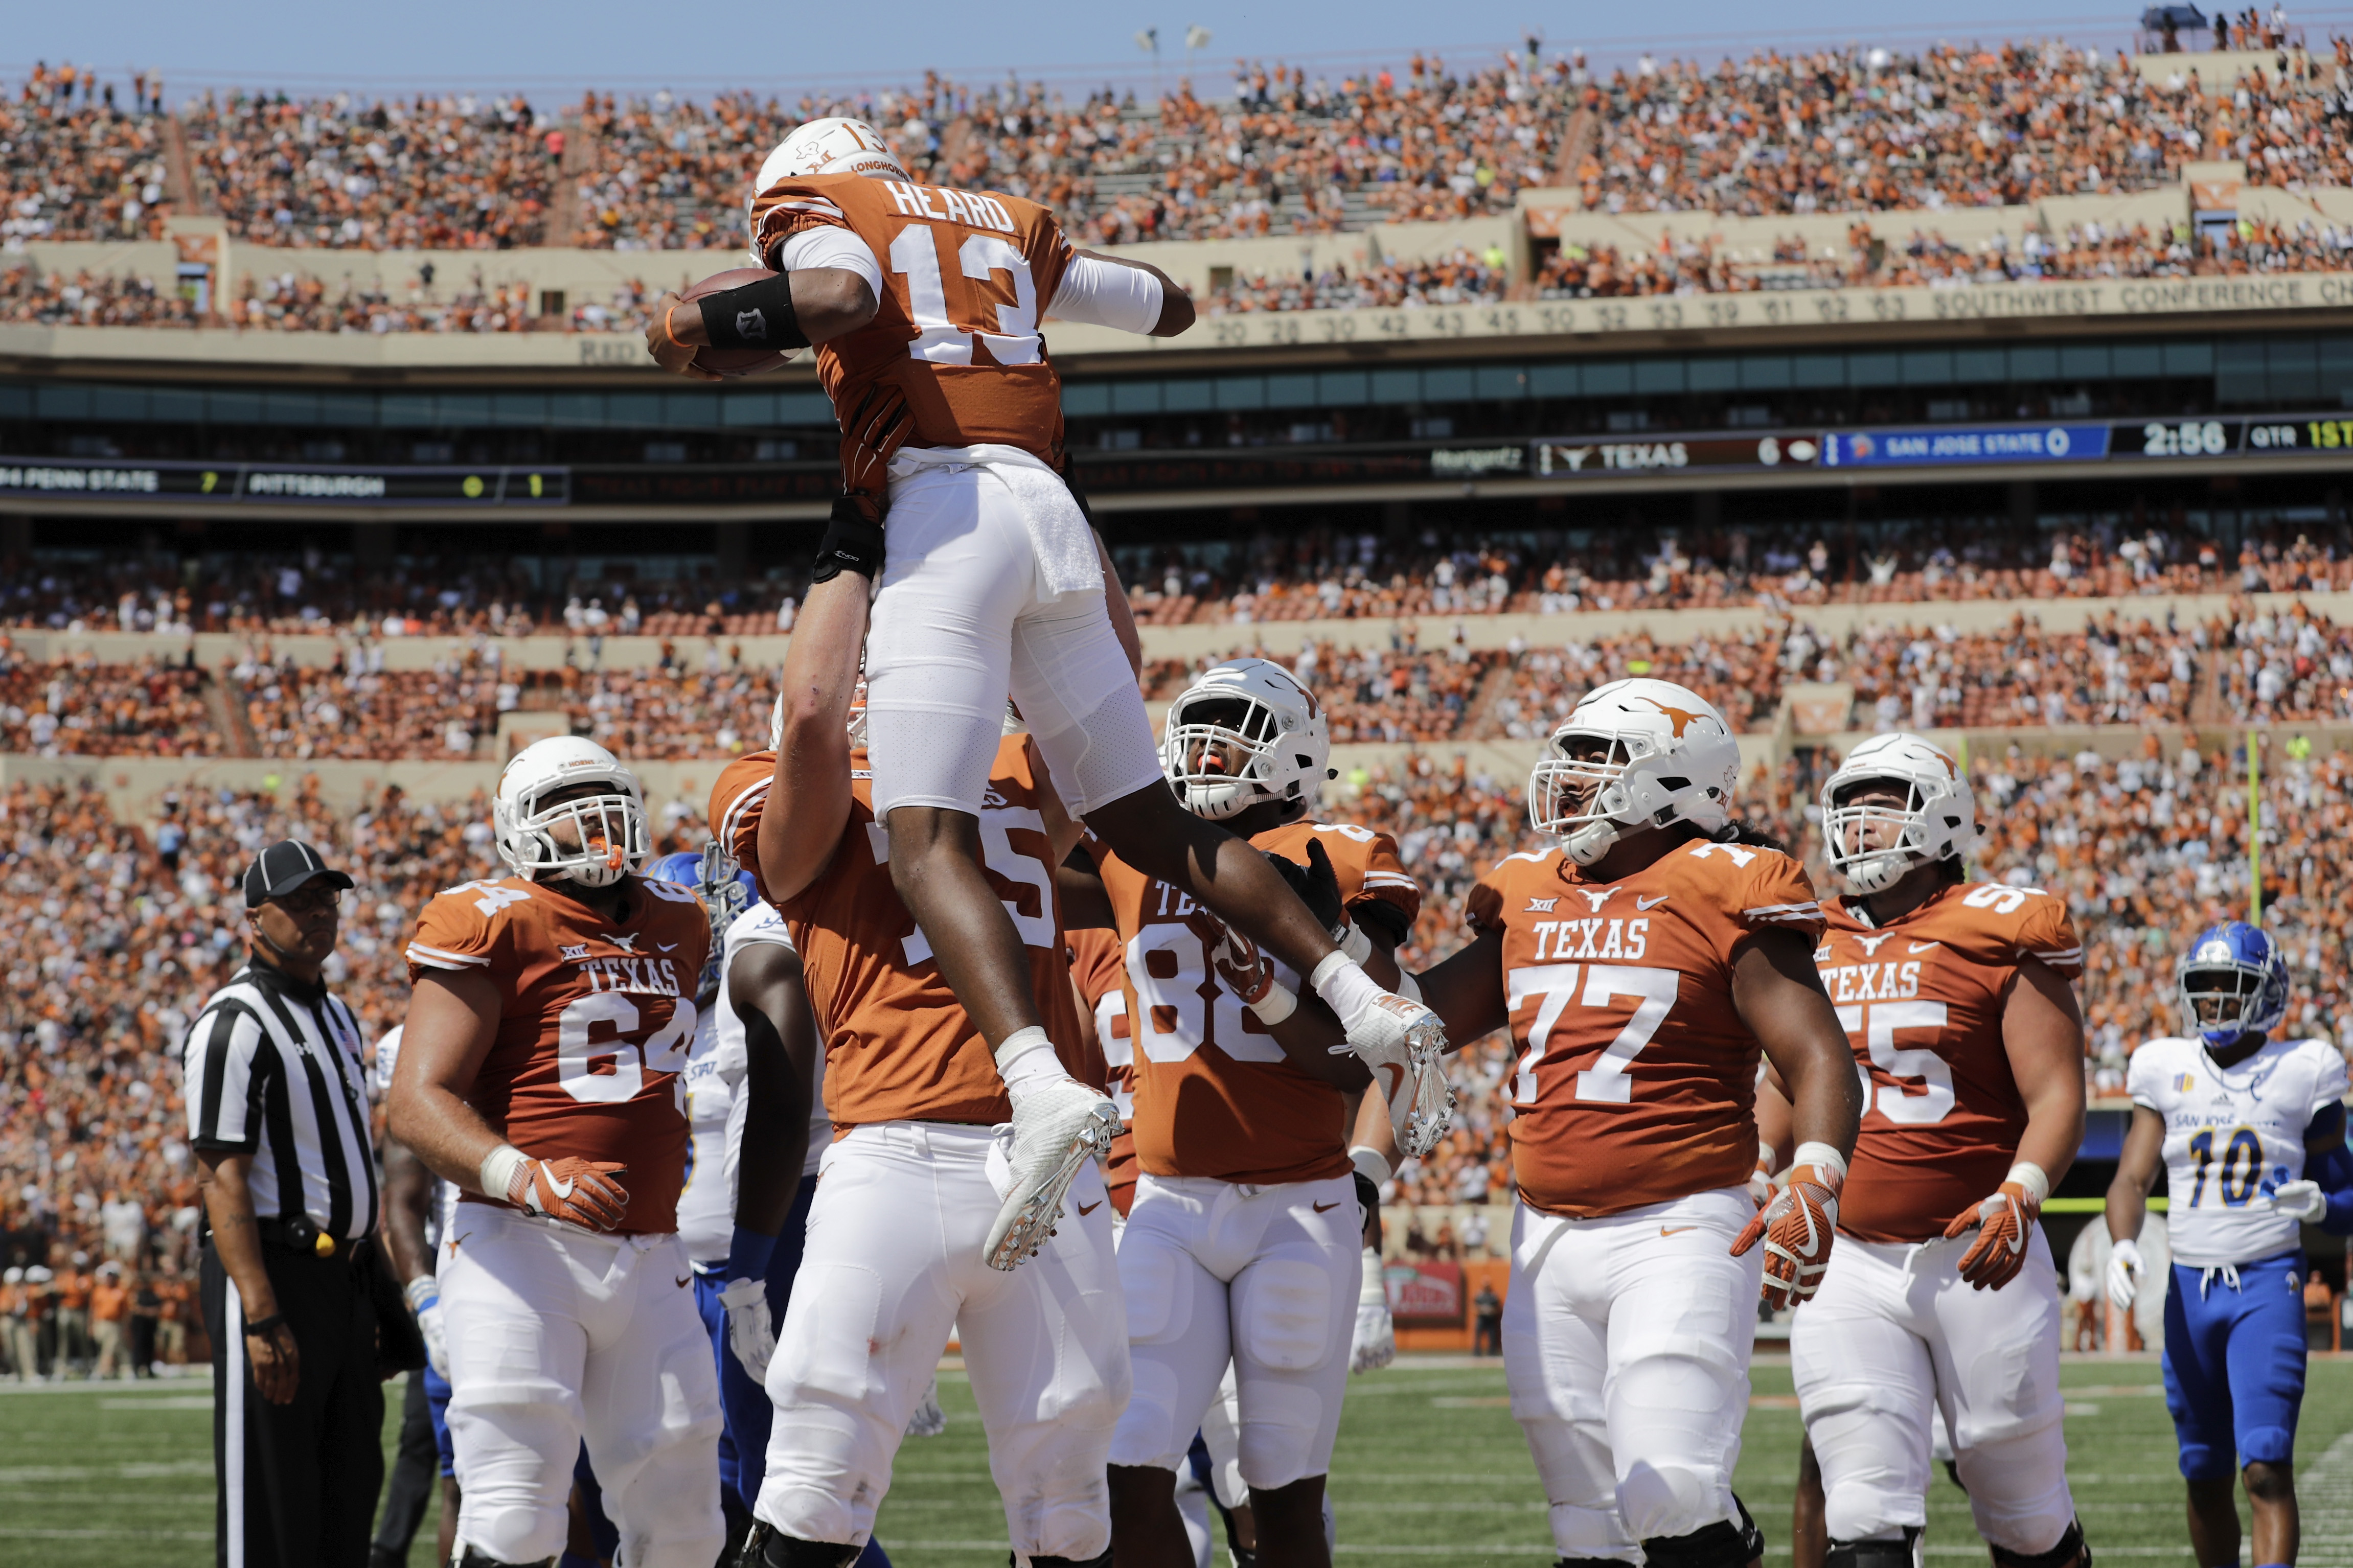 Game-by-game predictions for Texas in 2018: Can the Longhorns finally turn the corner as a program?